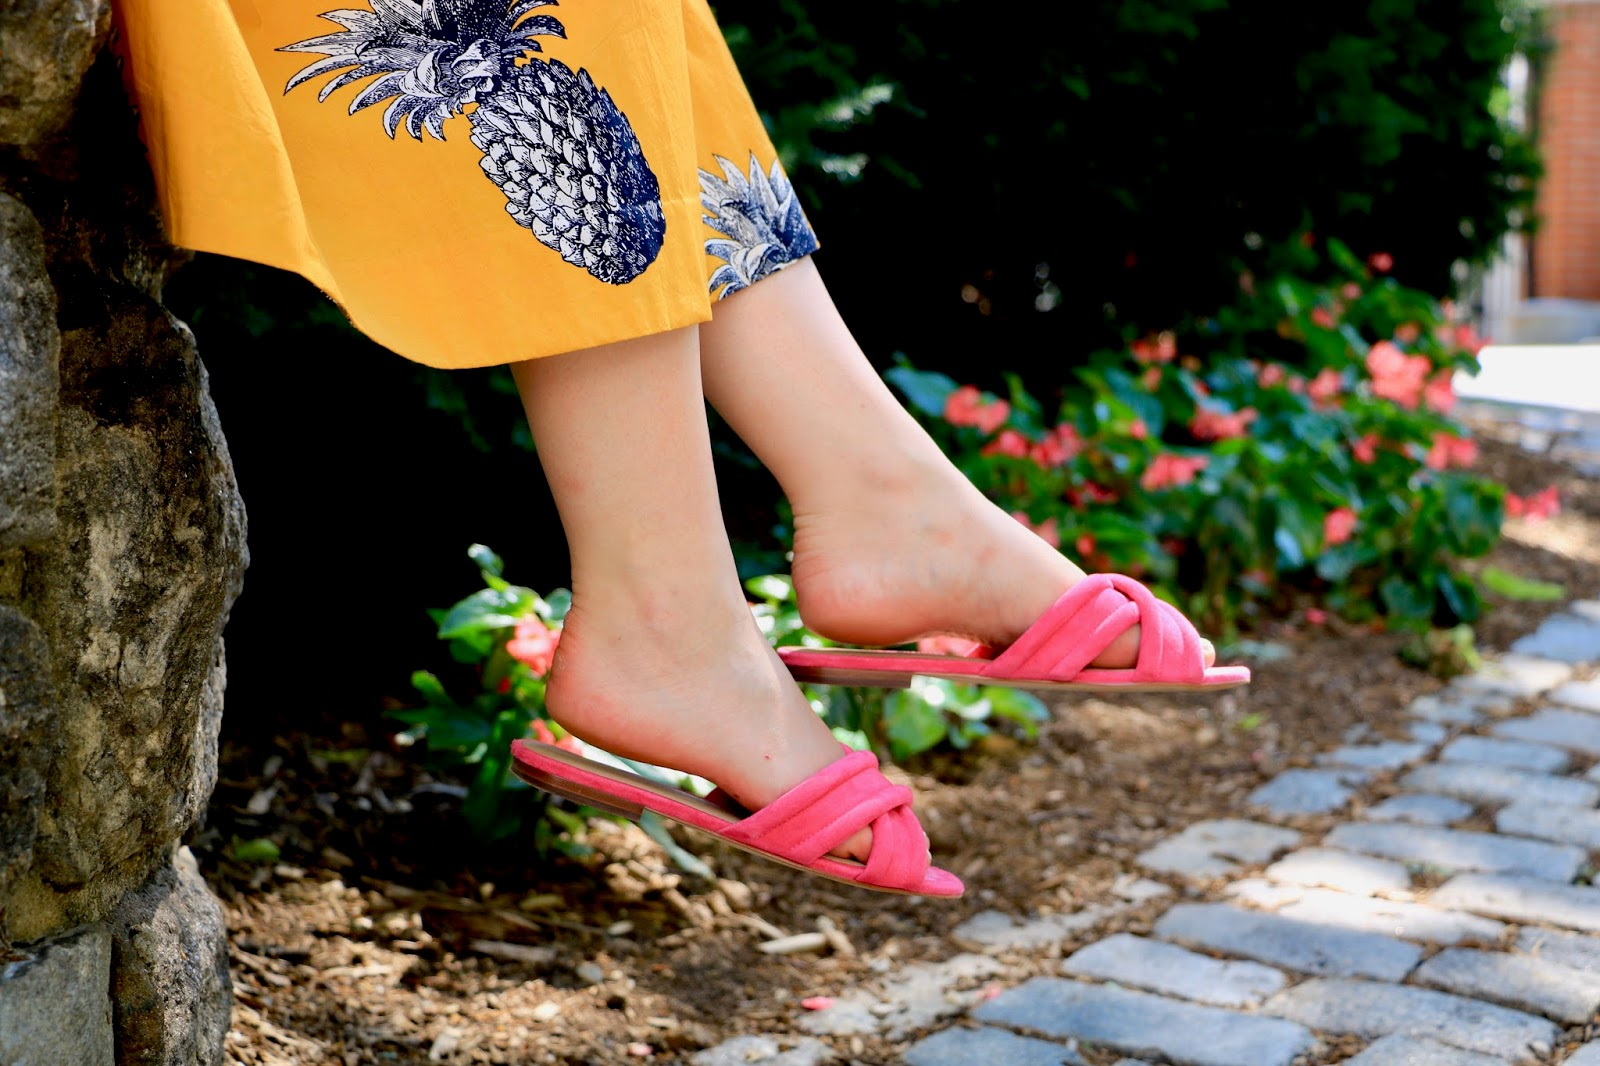 nyc fashion blogger Kathleen Harper wearing ann taylor pink slide sandals